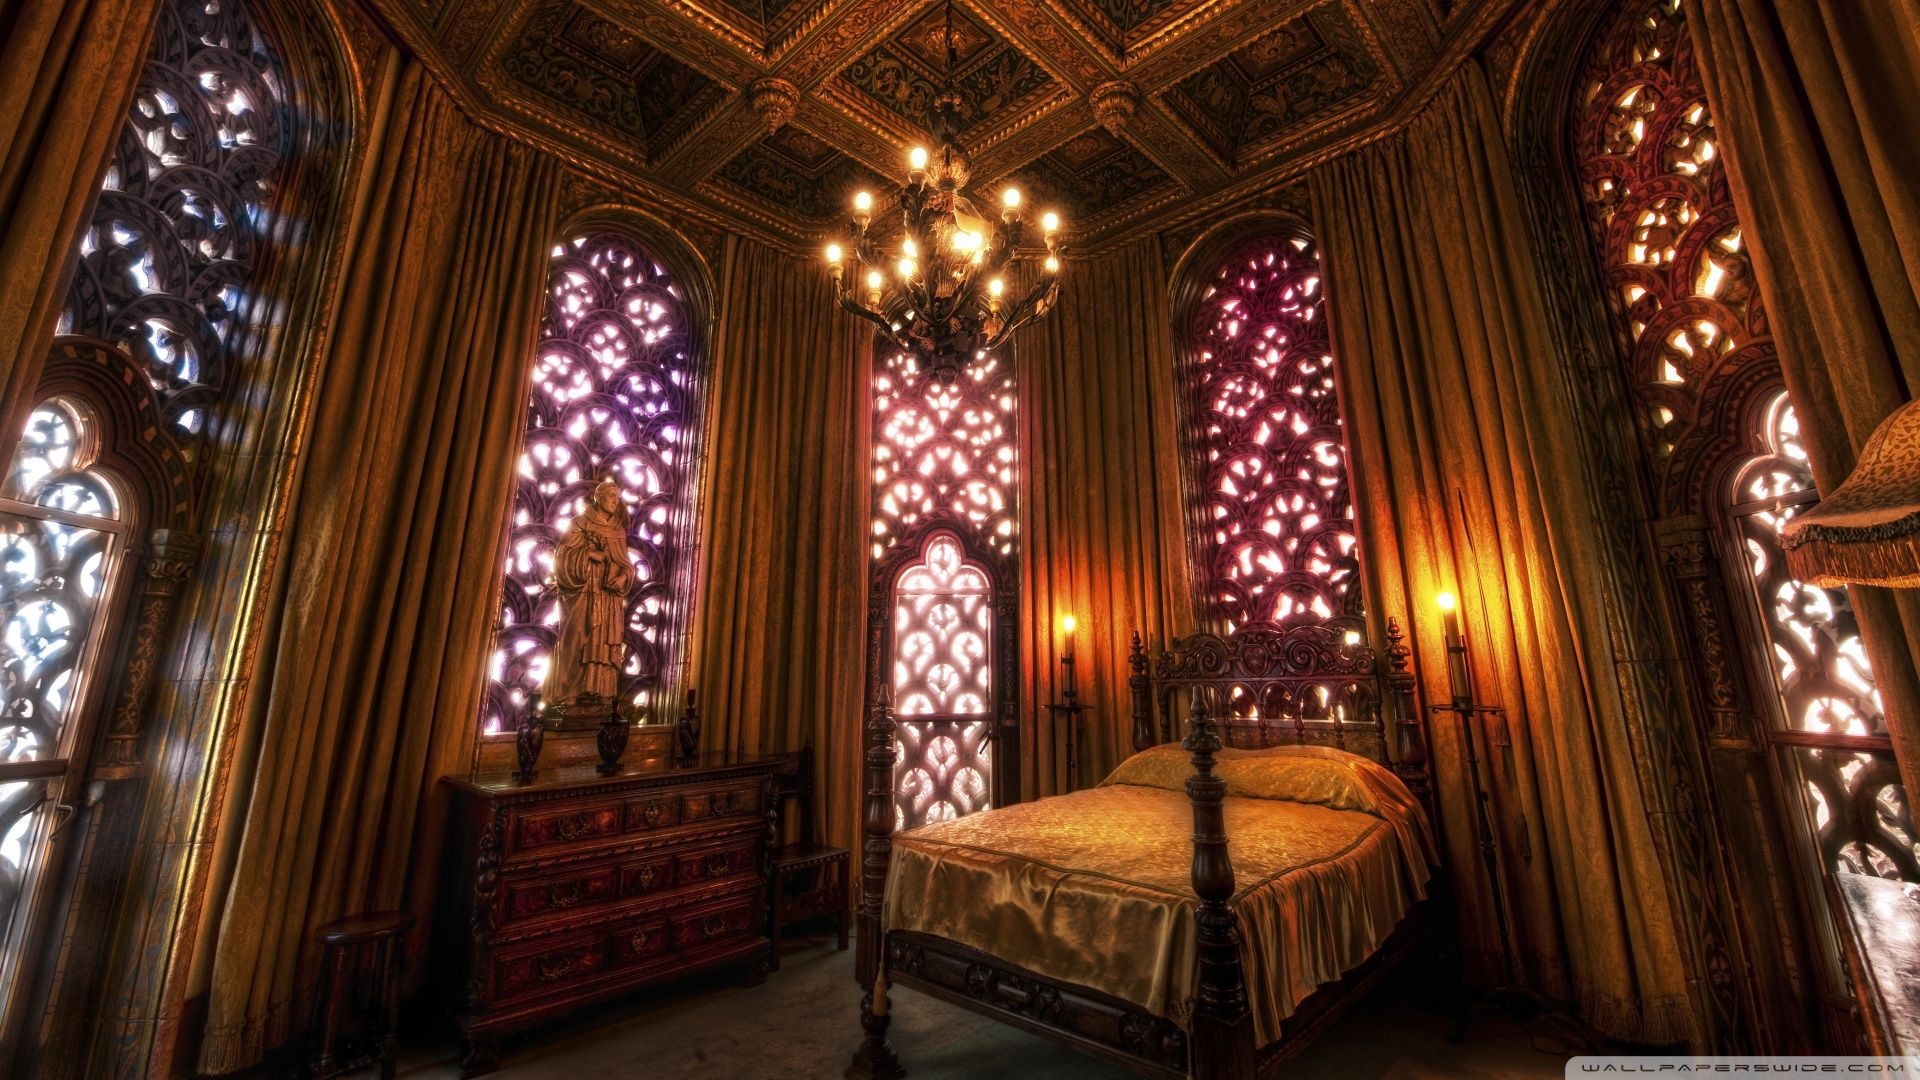 Dark bedroom background dark spotlight room background - Hearst Castle Bedrooms Bedroom Castle Bedroom Wallpaper 750x421 Hearst Castle Bedroom